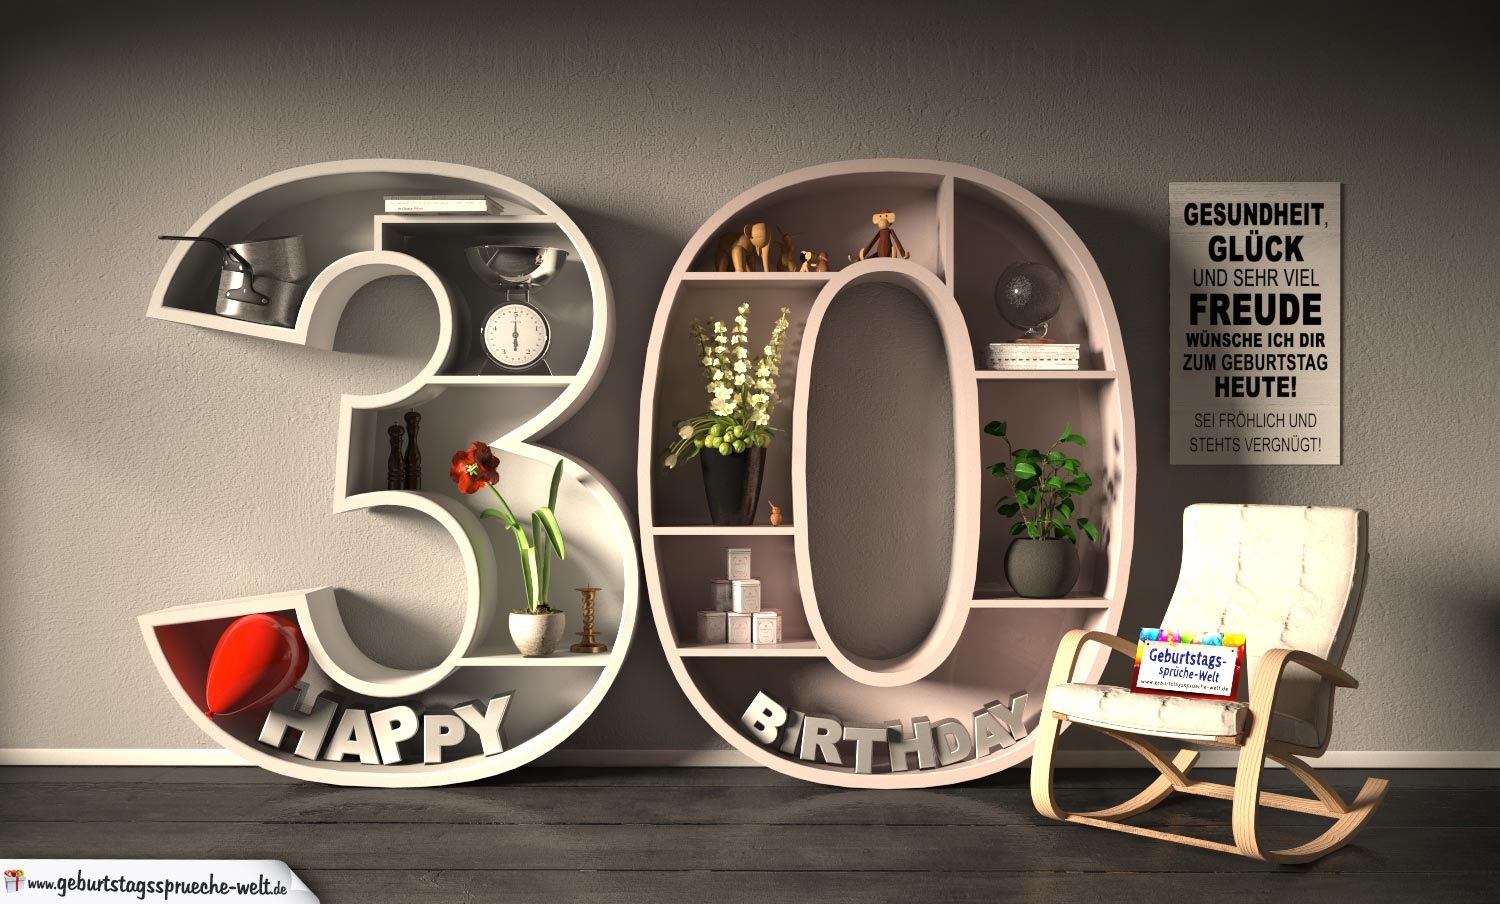 kostenlose geburtstagskarte happy birthday mit spruch zum 30 geburtstag geburtstagsspr che welt. Black Bedroom Furniture Sets. Home Design Ideas